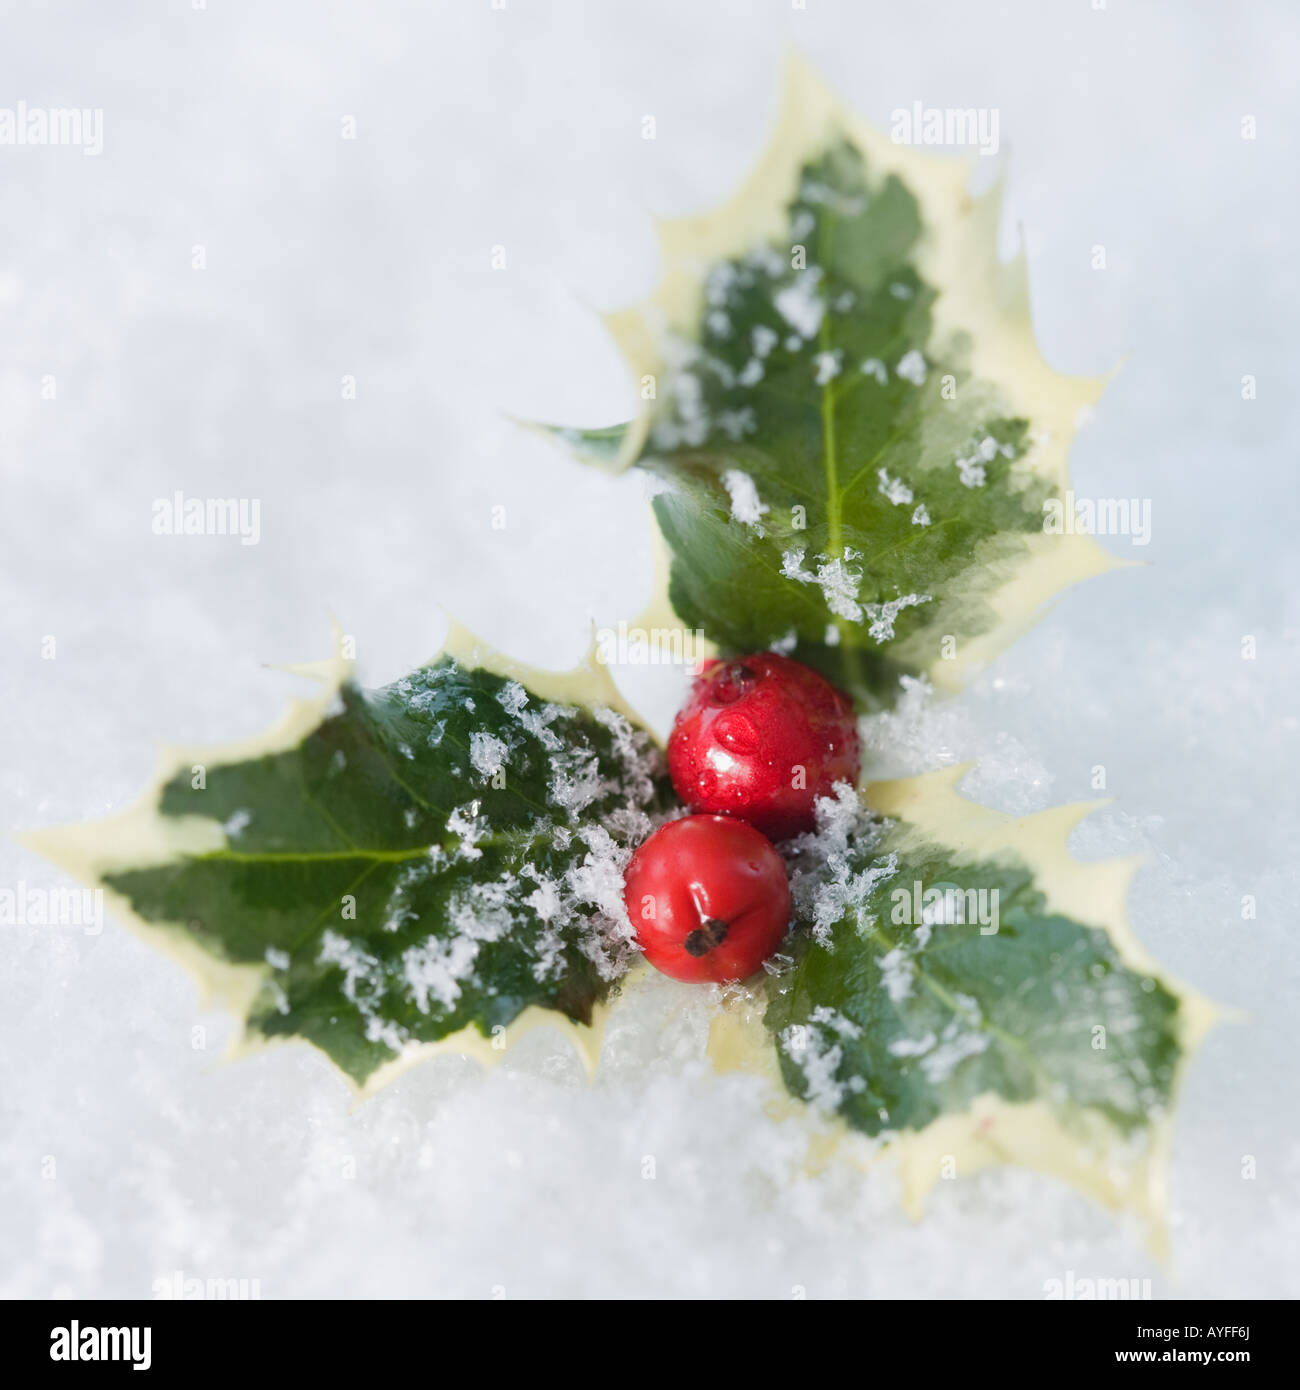 Close up of holly in snow - Stock Image